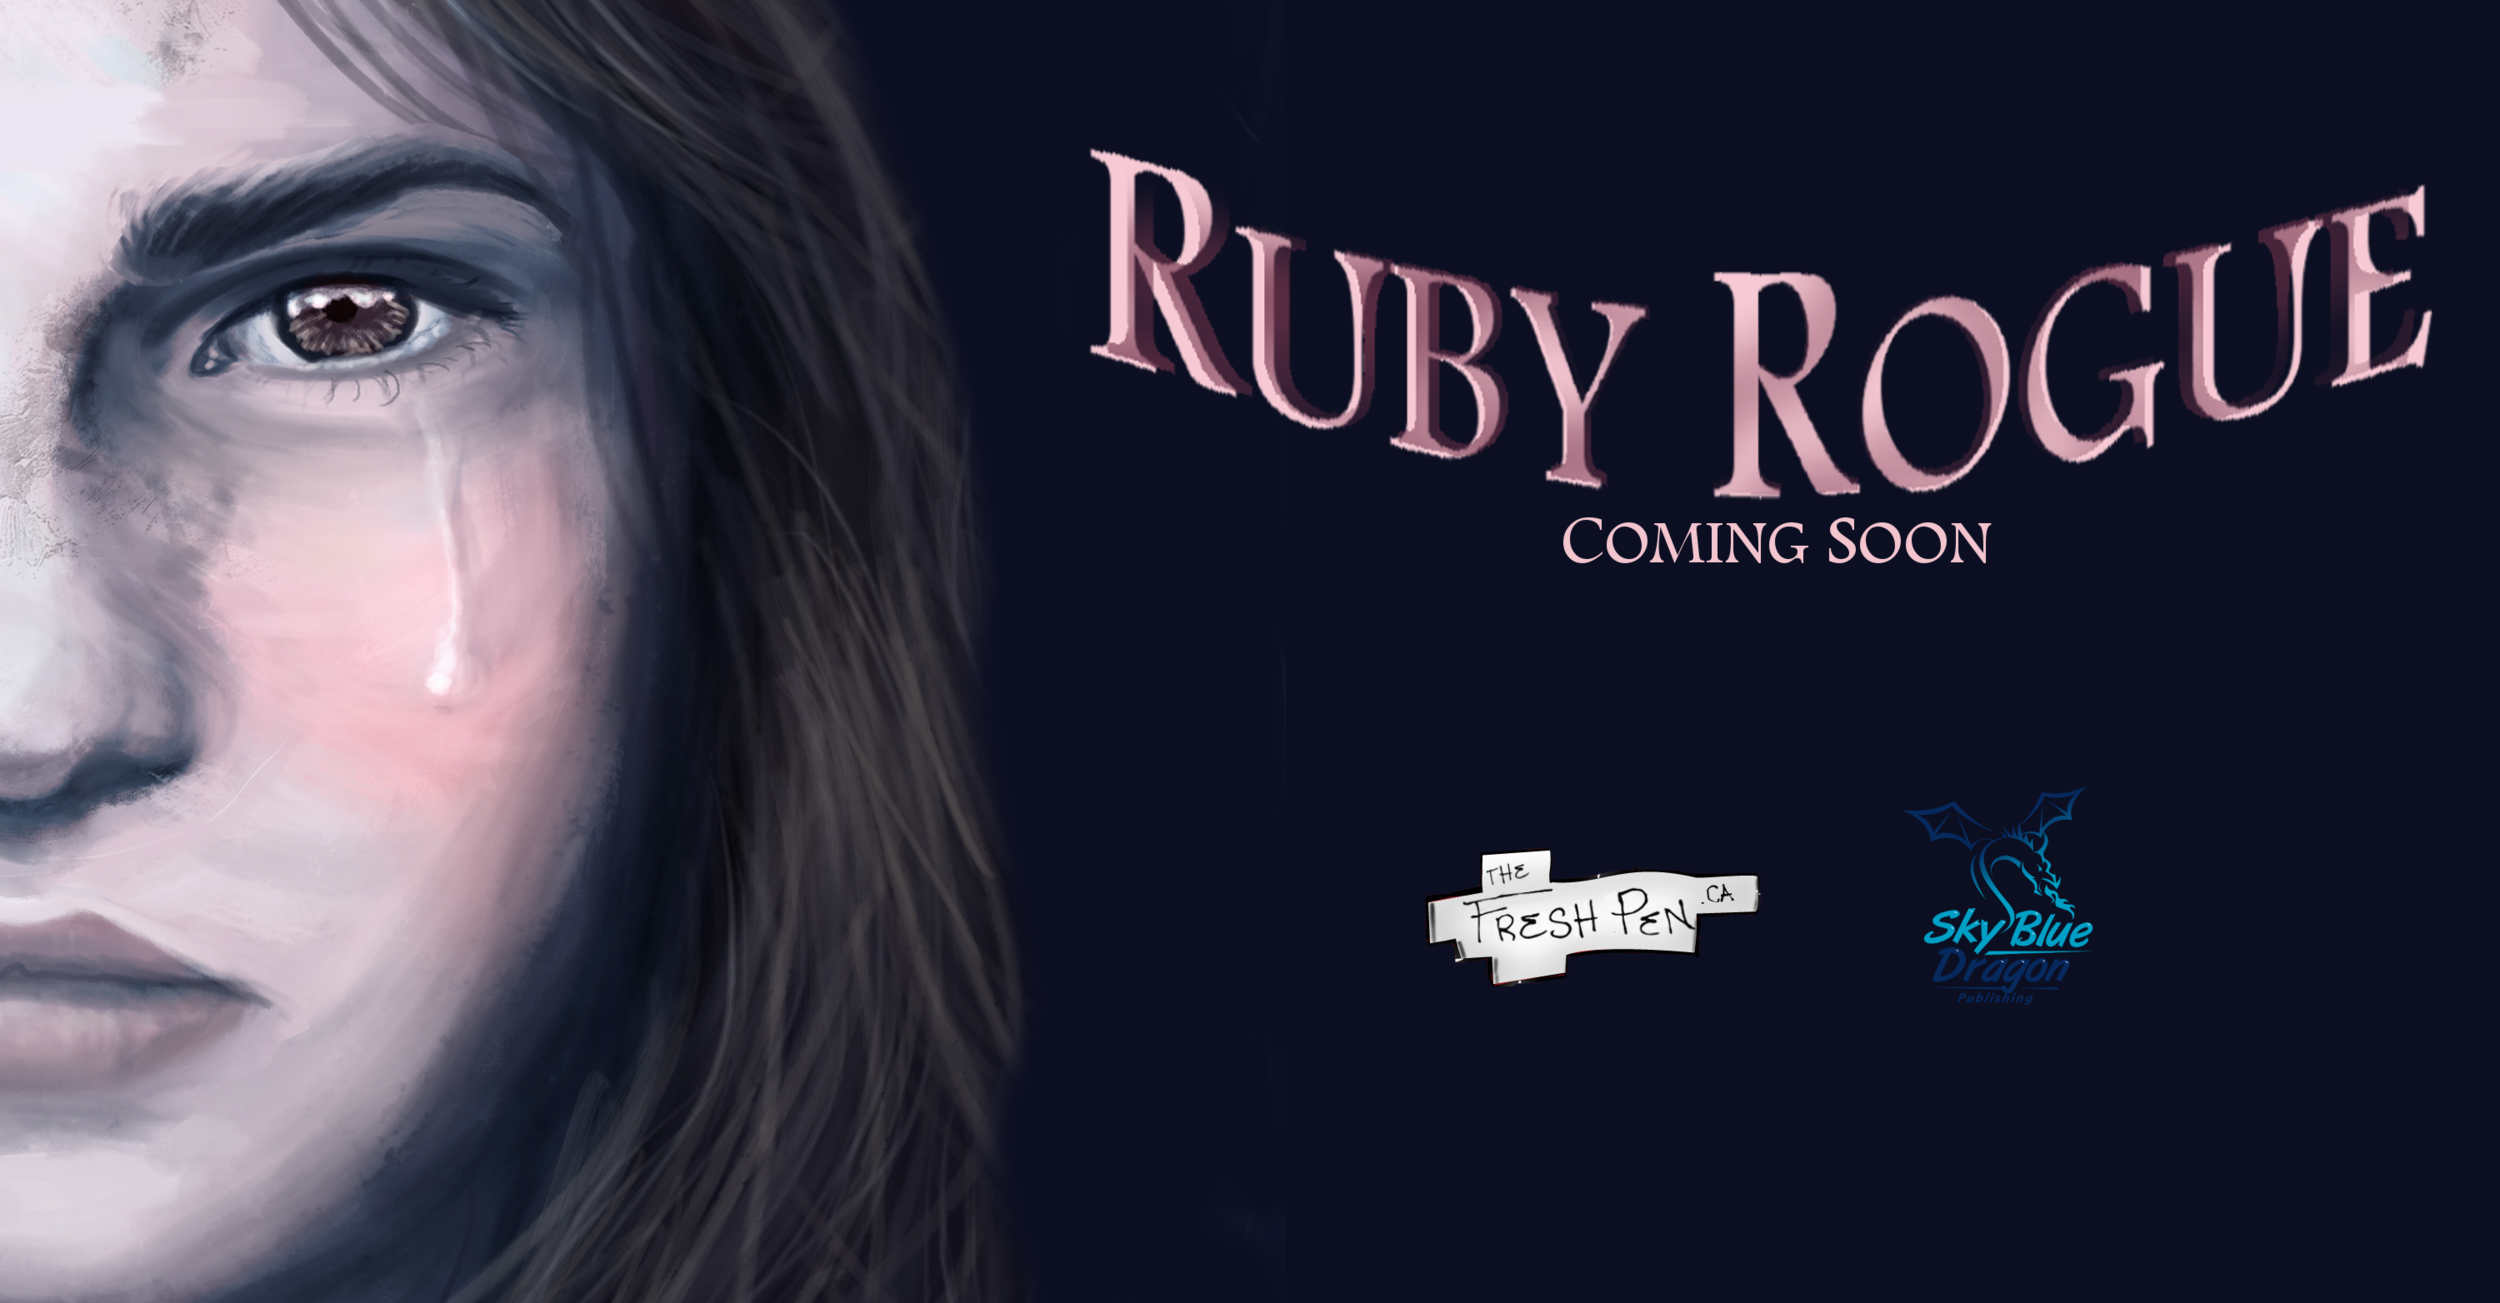 rubyroguesneakpreview2.png